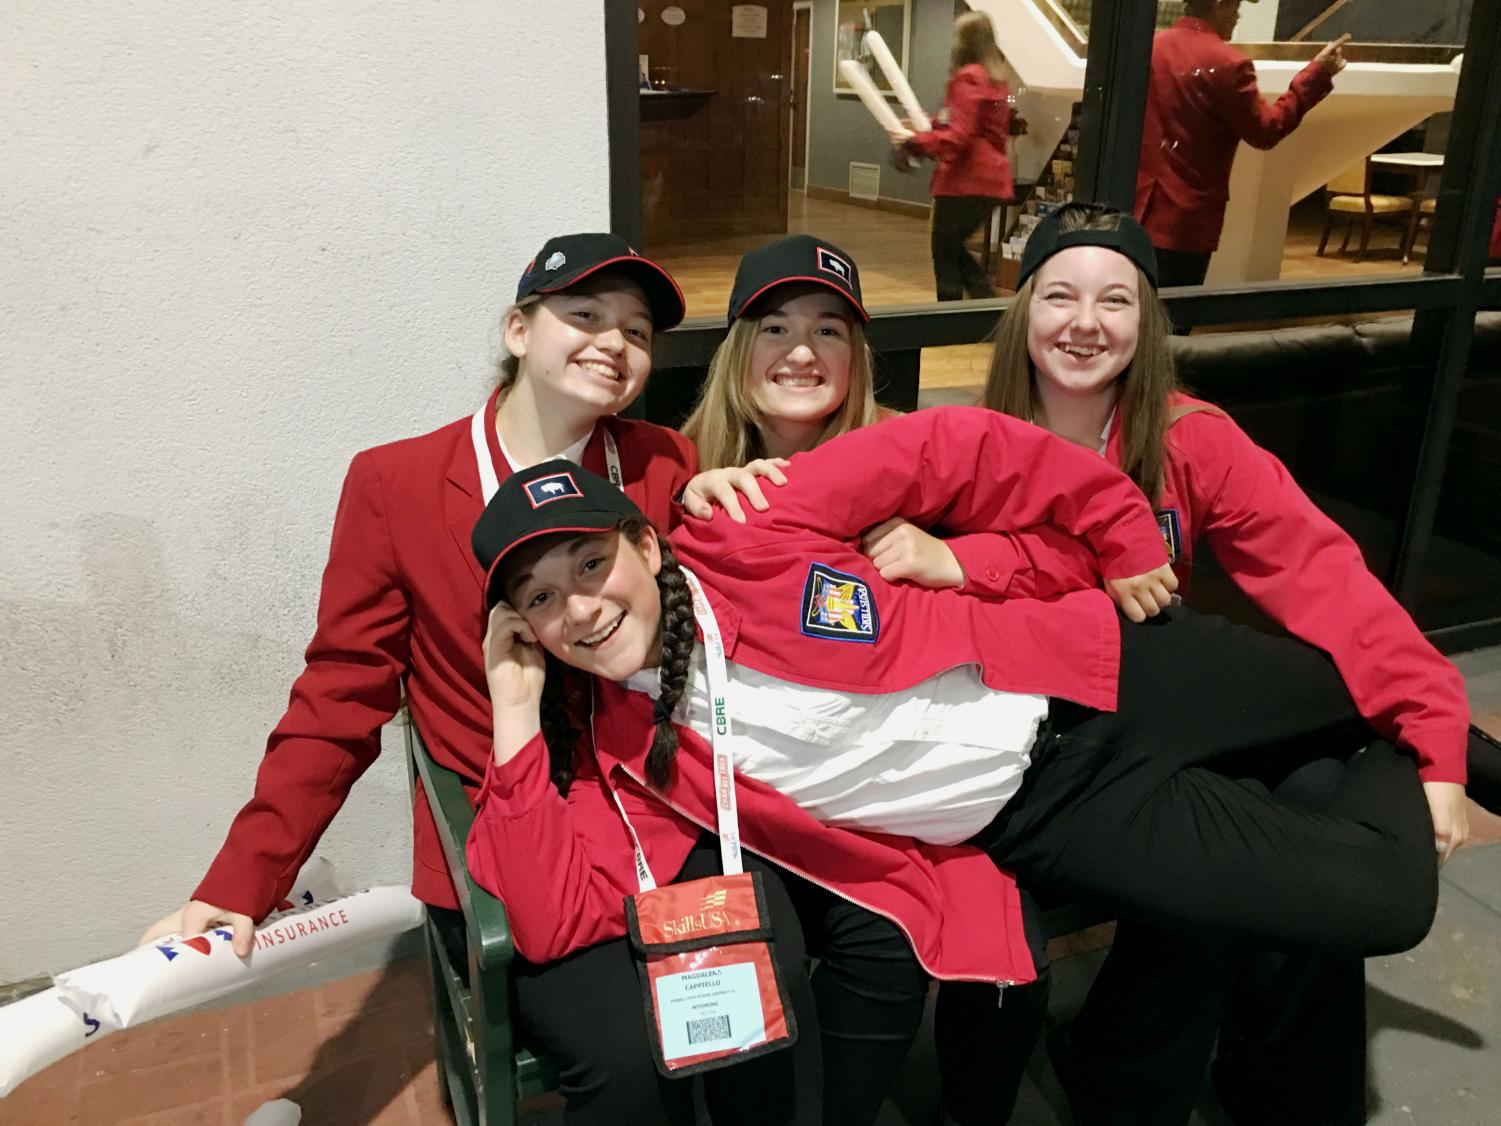 Powell High School SkillsUSA members pose for a picture at the National competition in Kentucky. Back, from left: Bailee Moore, Kaitlyn Church, Nellie Lucas. Front: Maggie Cappiello.